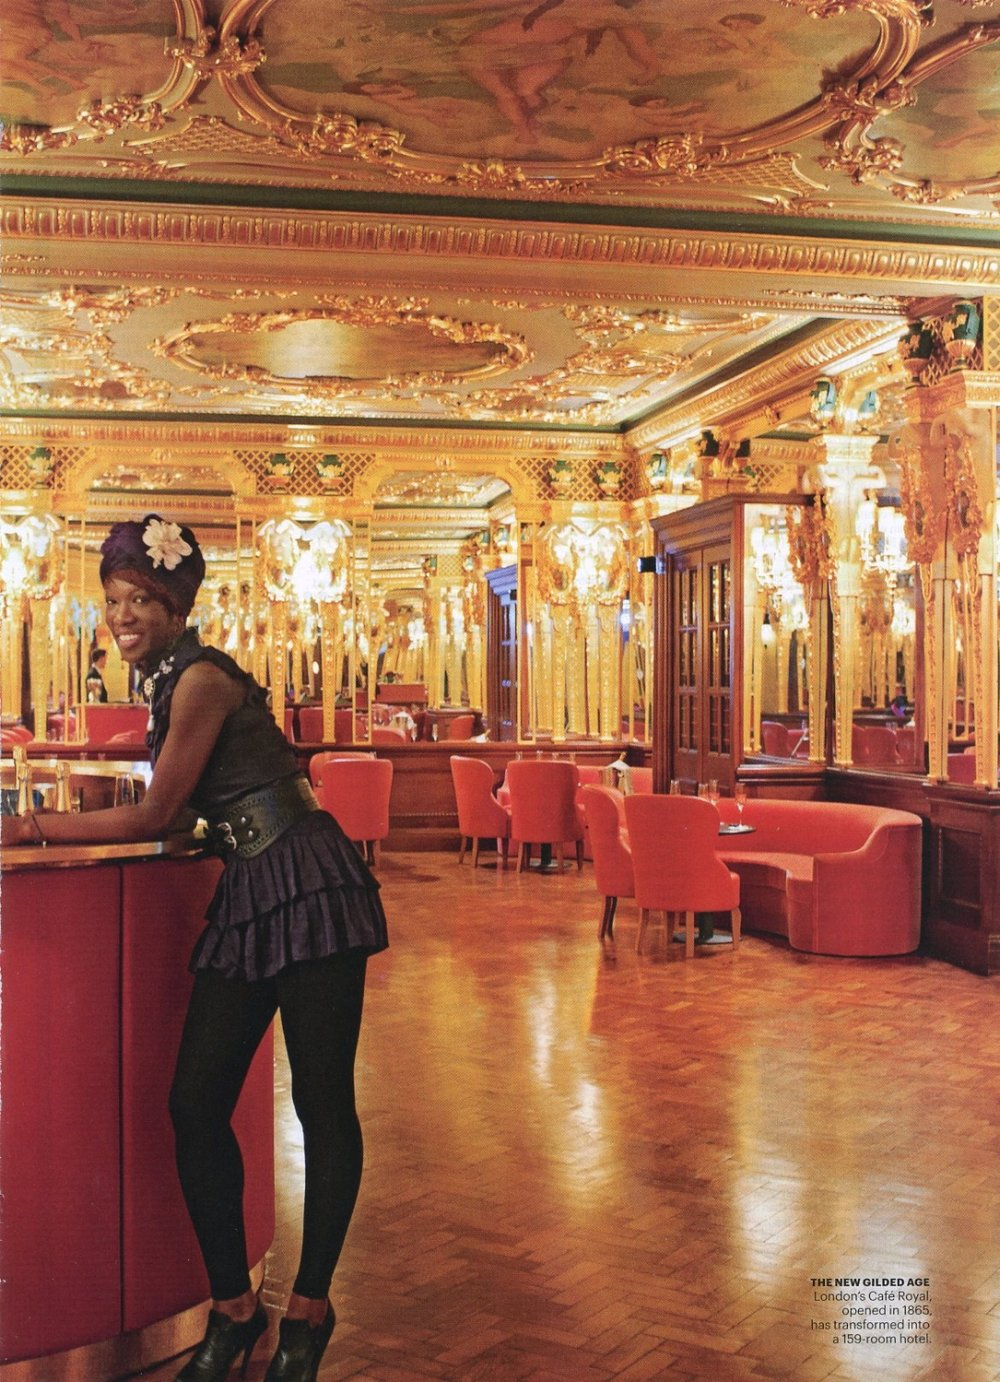 Hotel Cafe Royal lobby